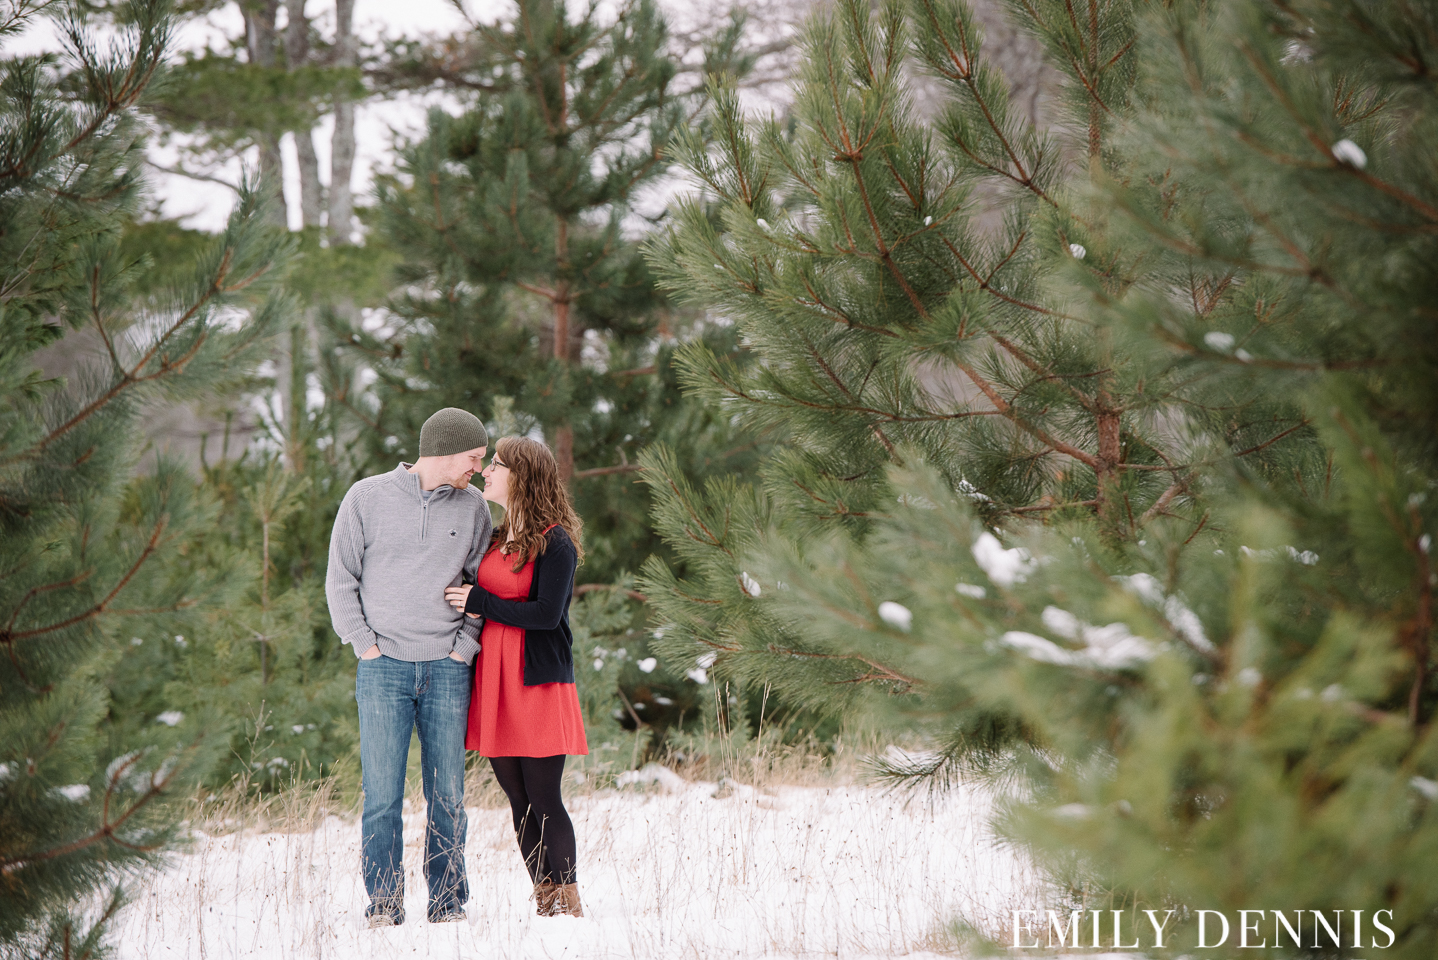 EMILY_DENNIS_PHOTOGRAPHY_engagement-12